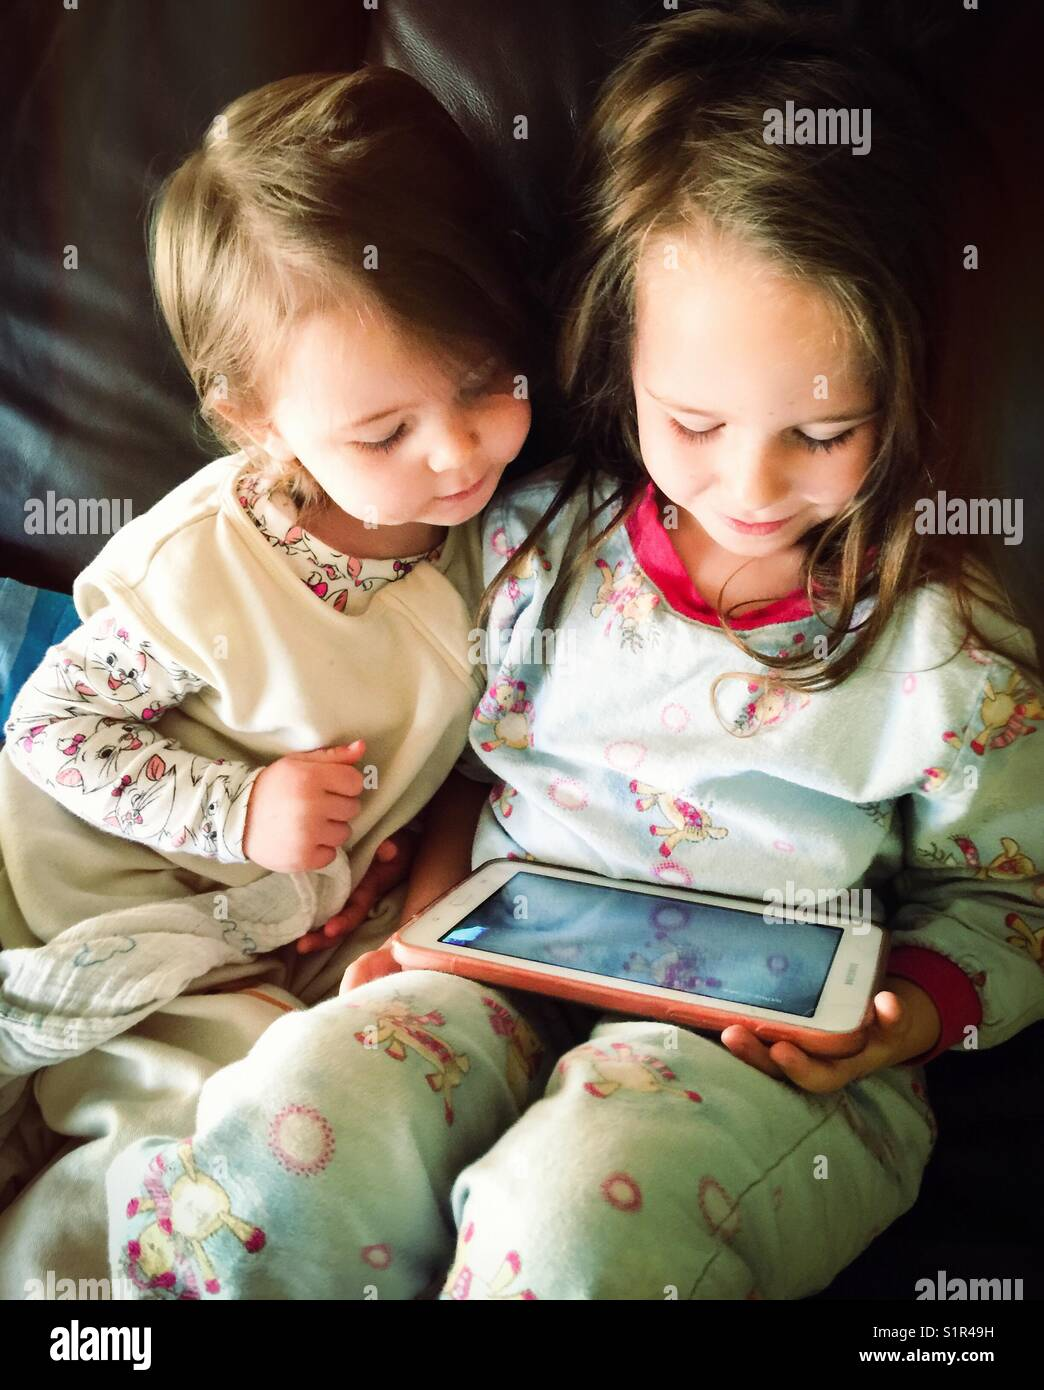 Young sisters watching videos on a tablet - Stock Image